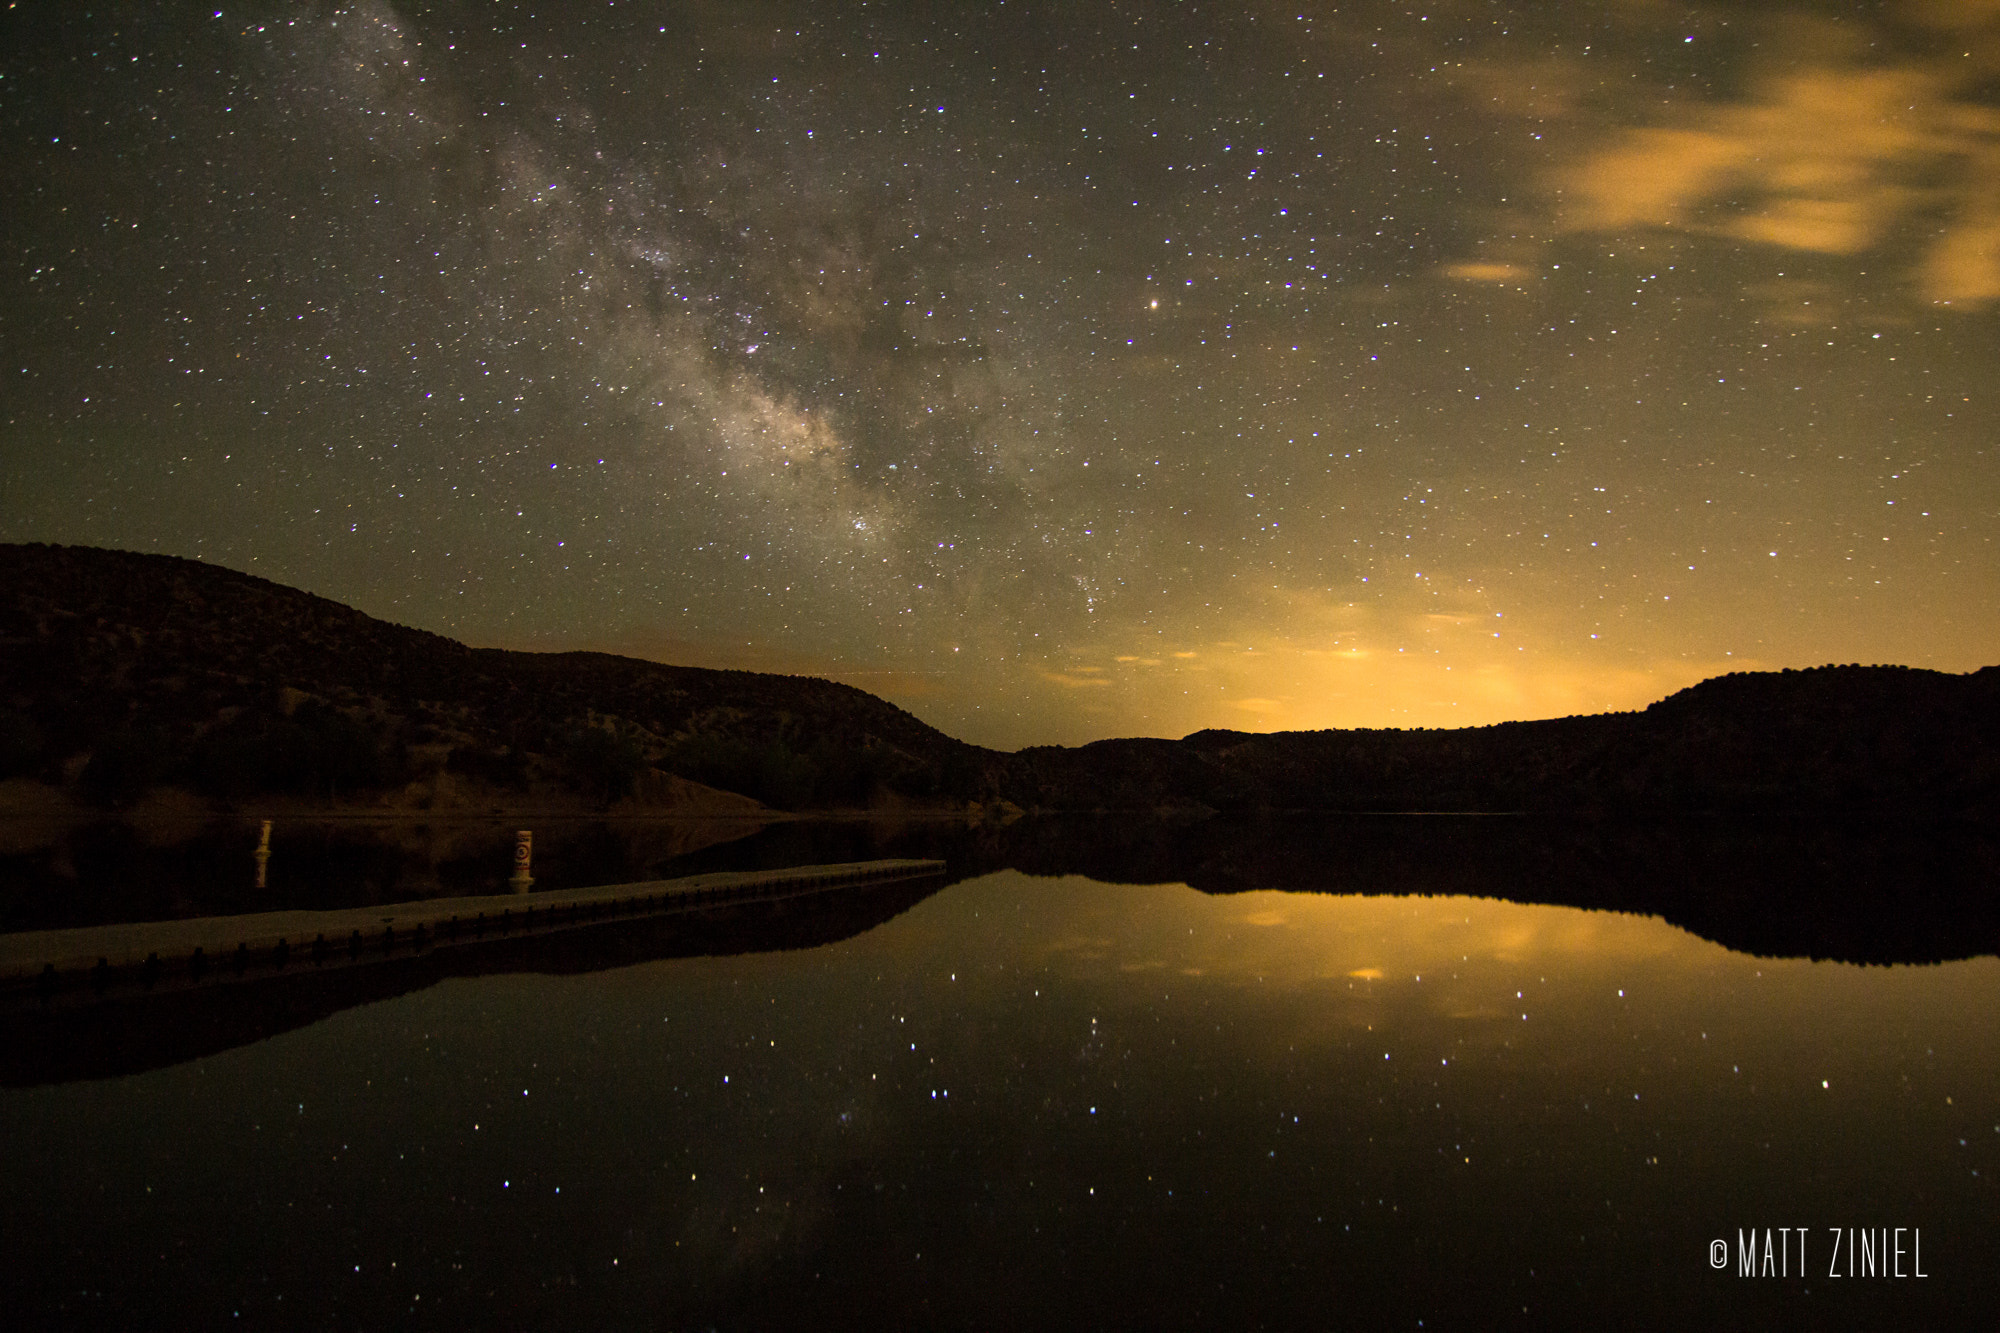 Photograph Reflections of the Night Sky by Matt Ziniel on 500px